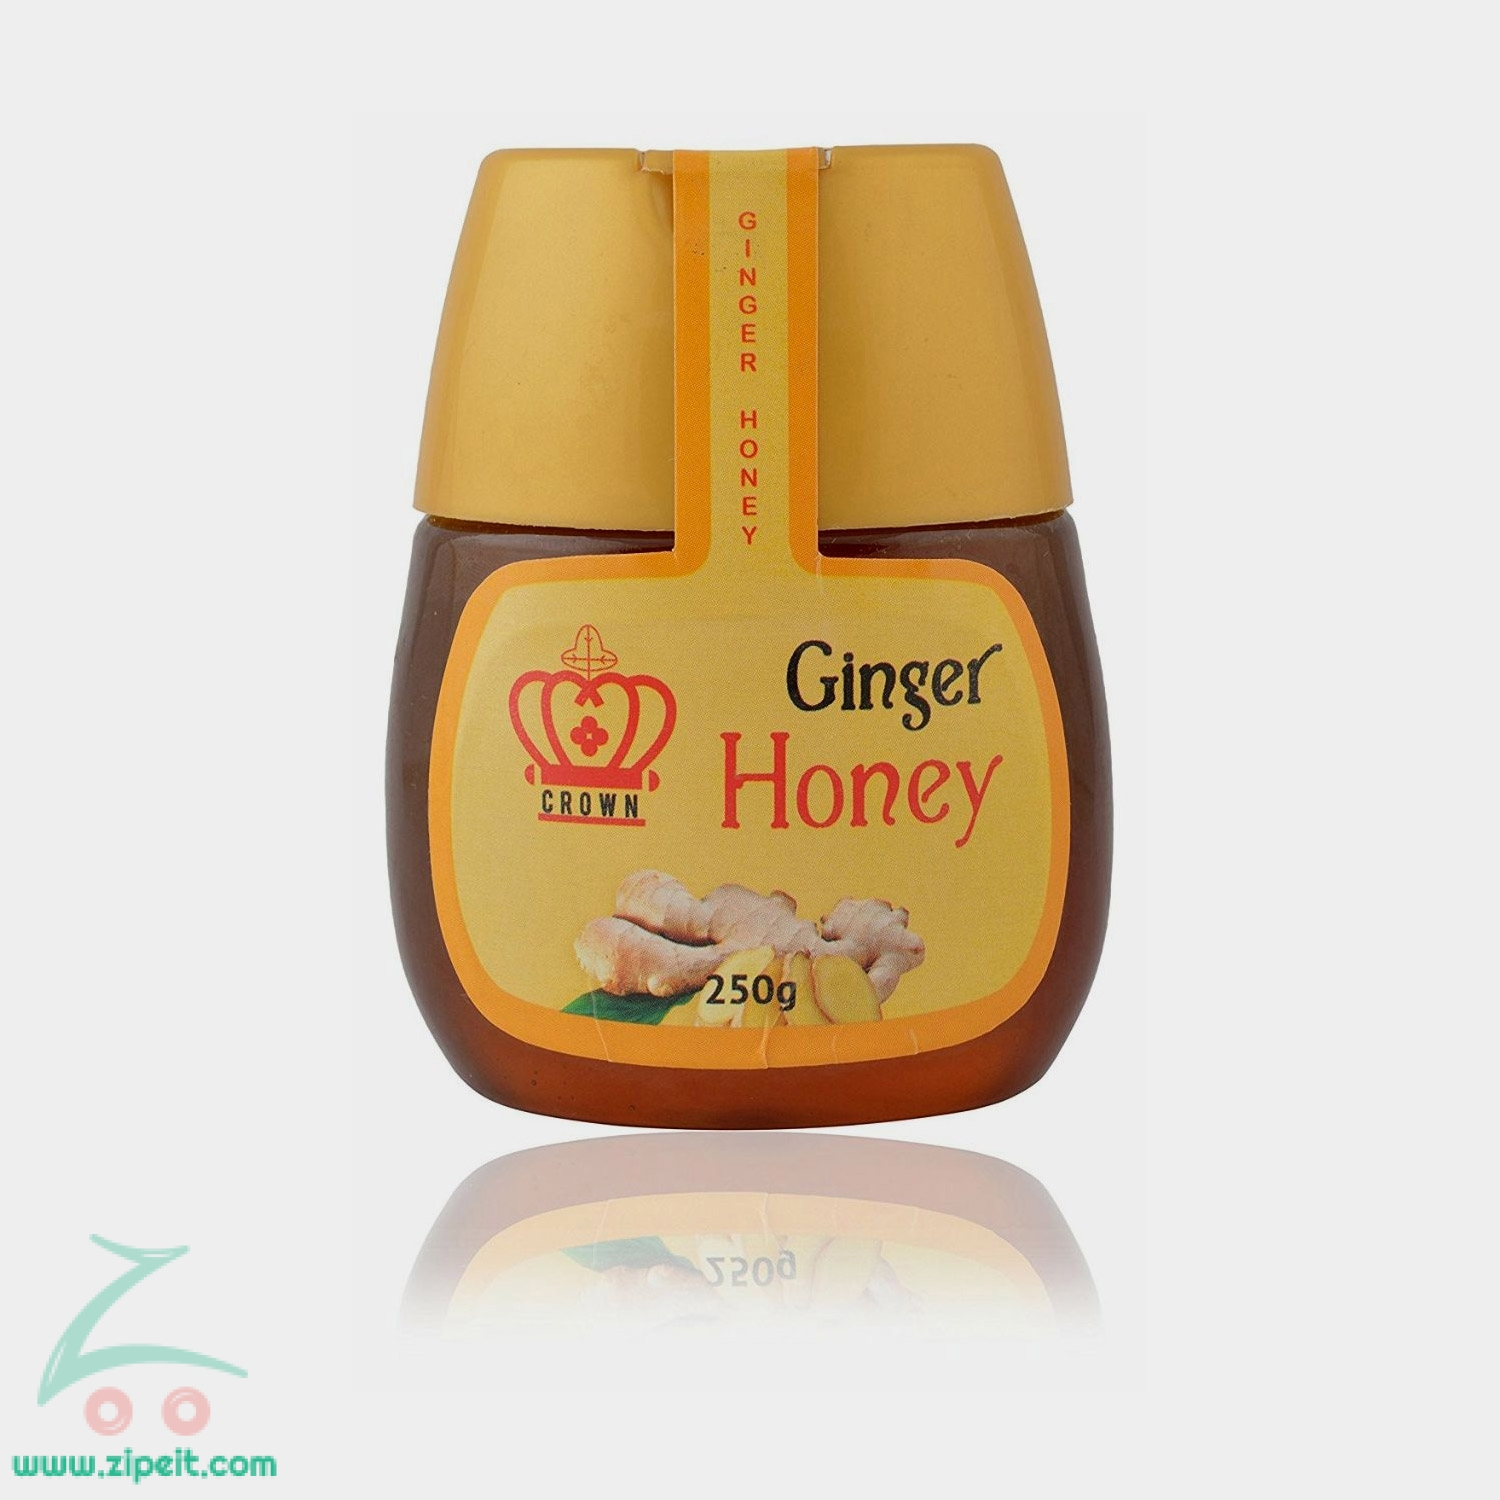 Crown Ginger Honey - 250g